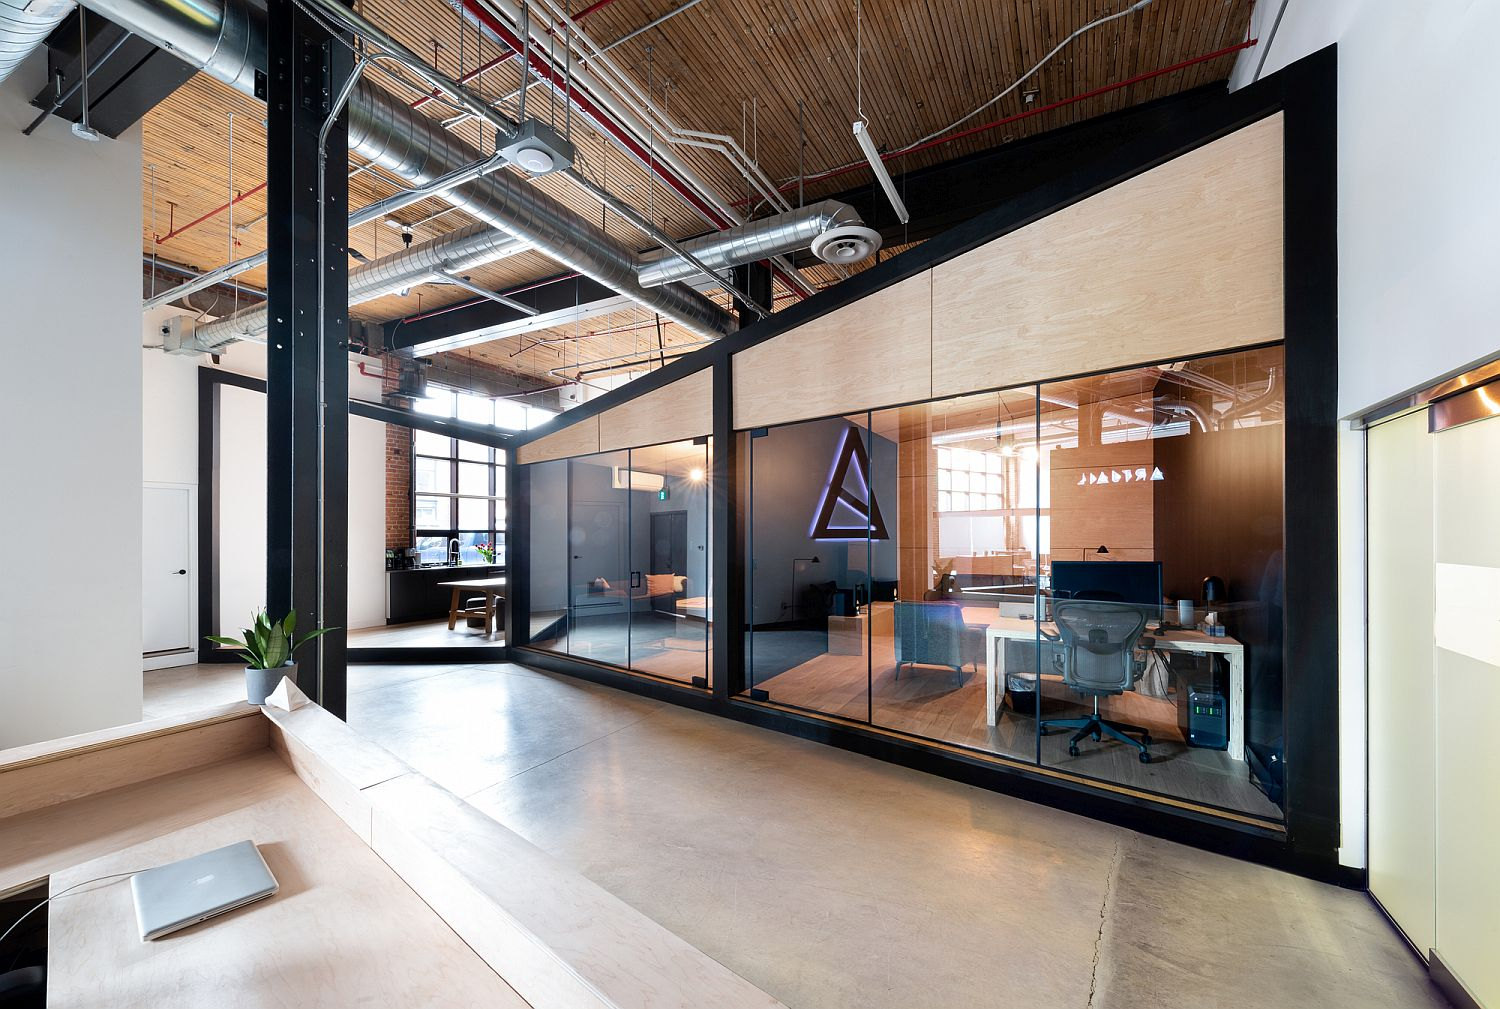 Custom VFX studios are combined with open space inside the office